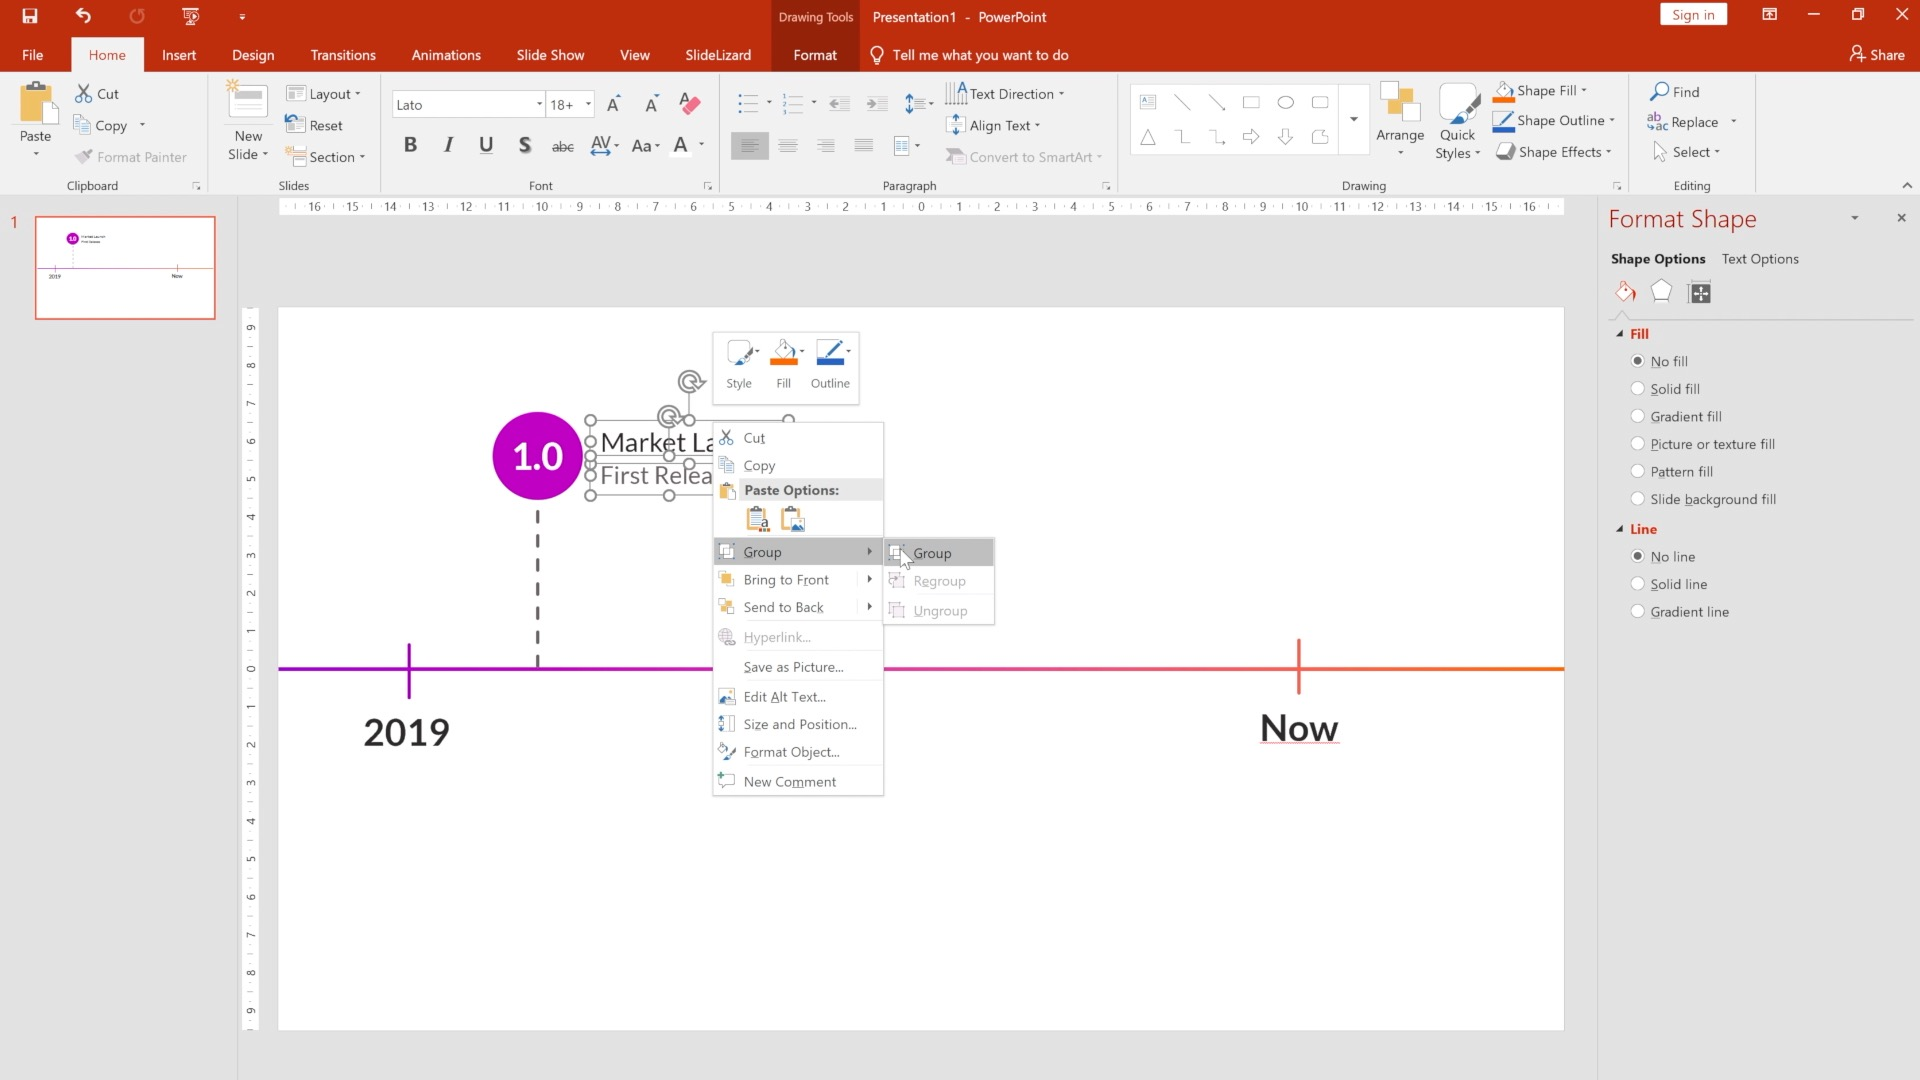 Animated Timeline Template For Powerpoint 2021 Slidelizard